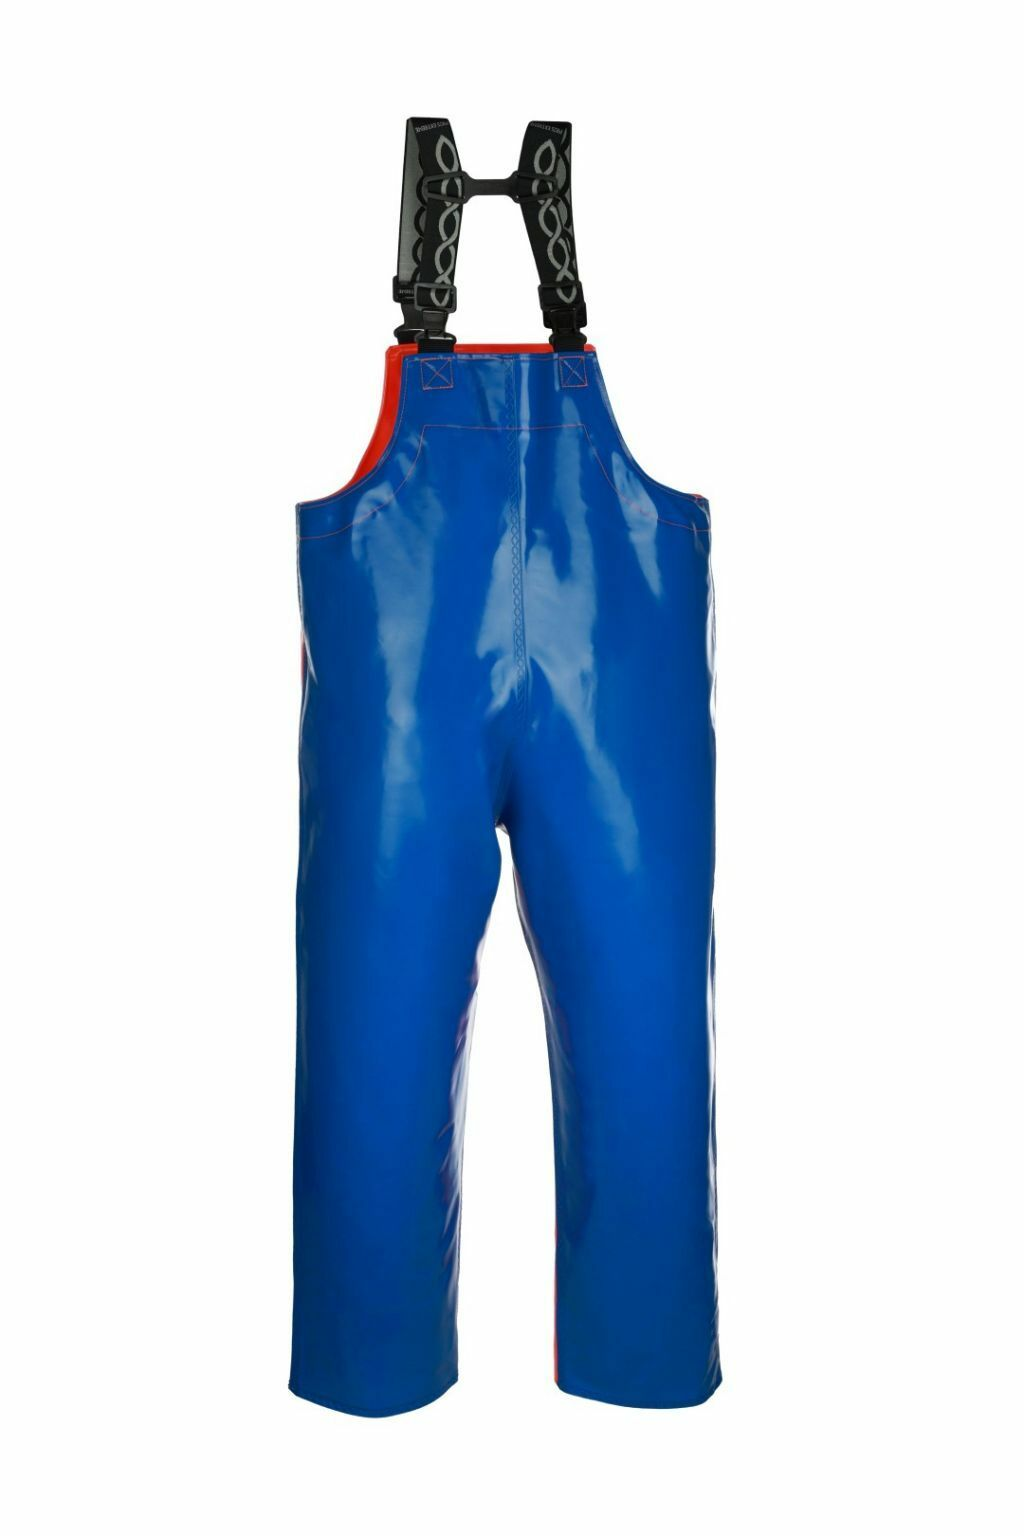 PROS PROS PROS EXTREME BIB and BRACE WATERPROOF STORM TROUSERS with Reinforcement STRONG bec8fa